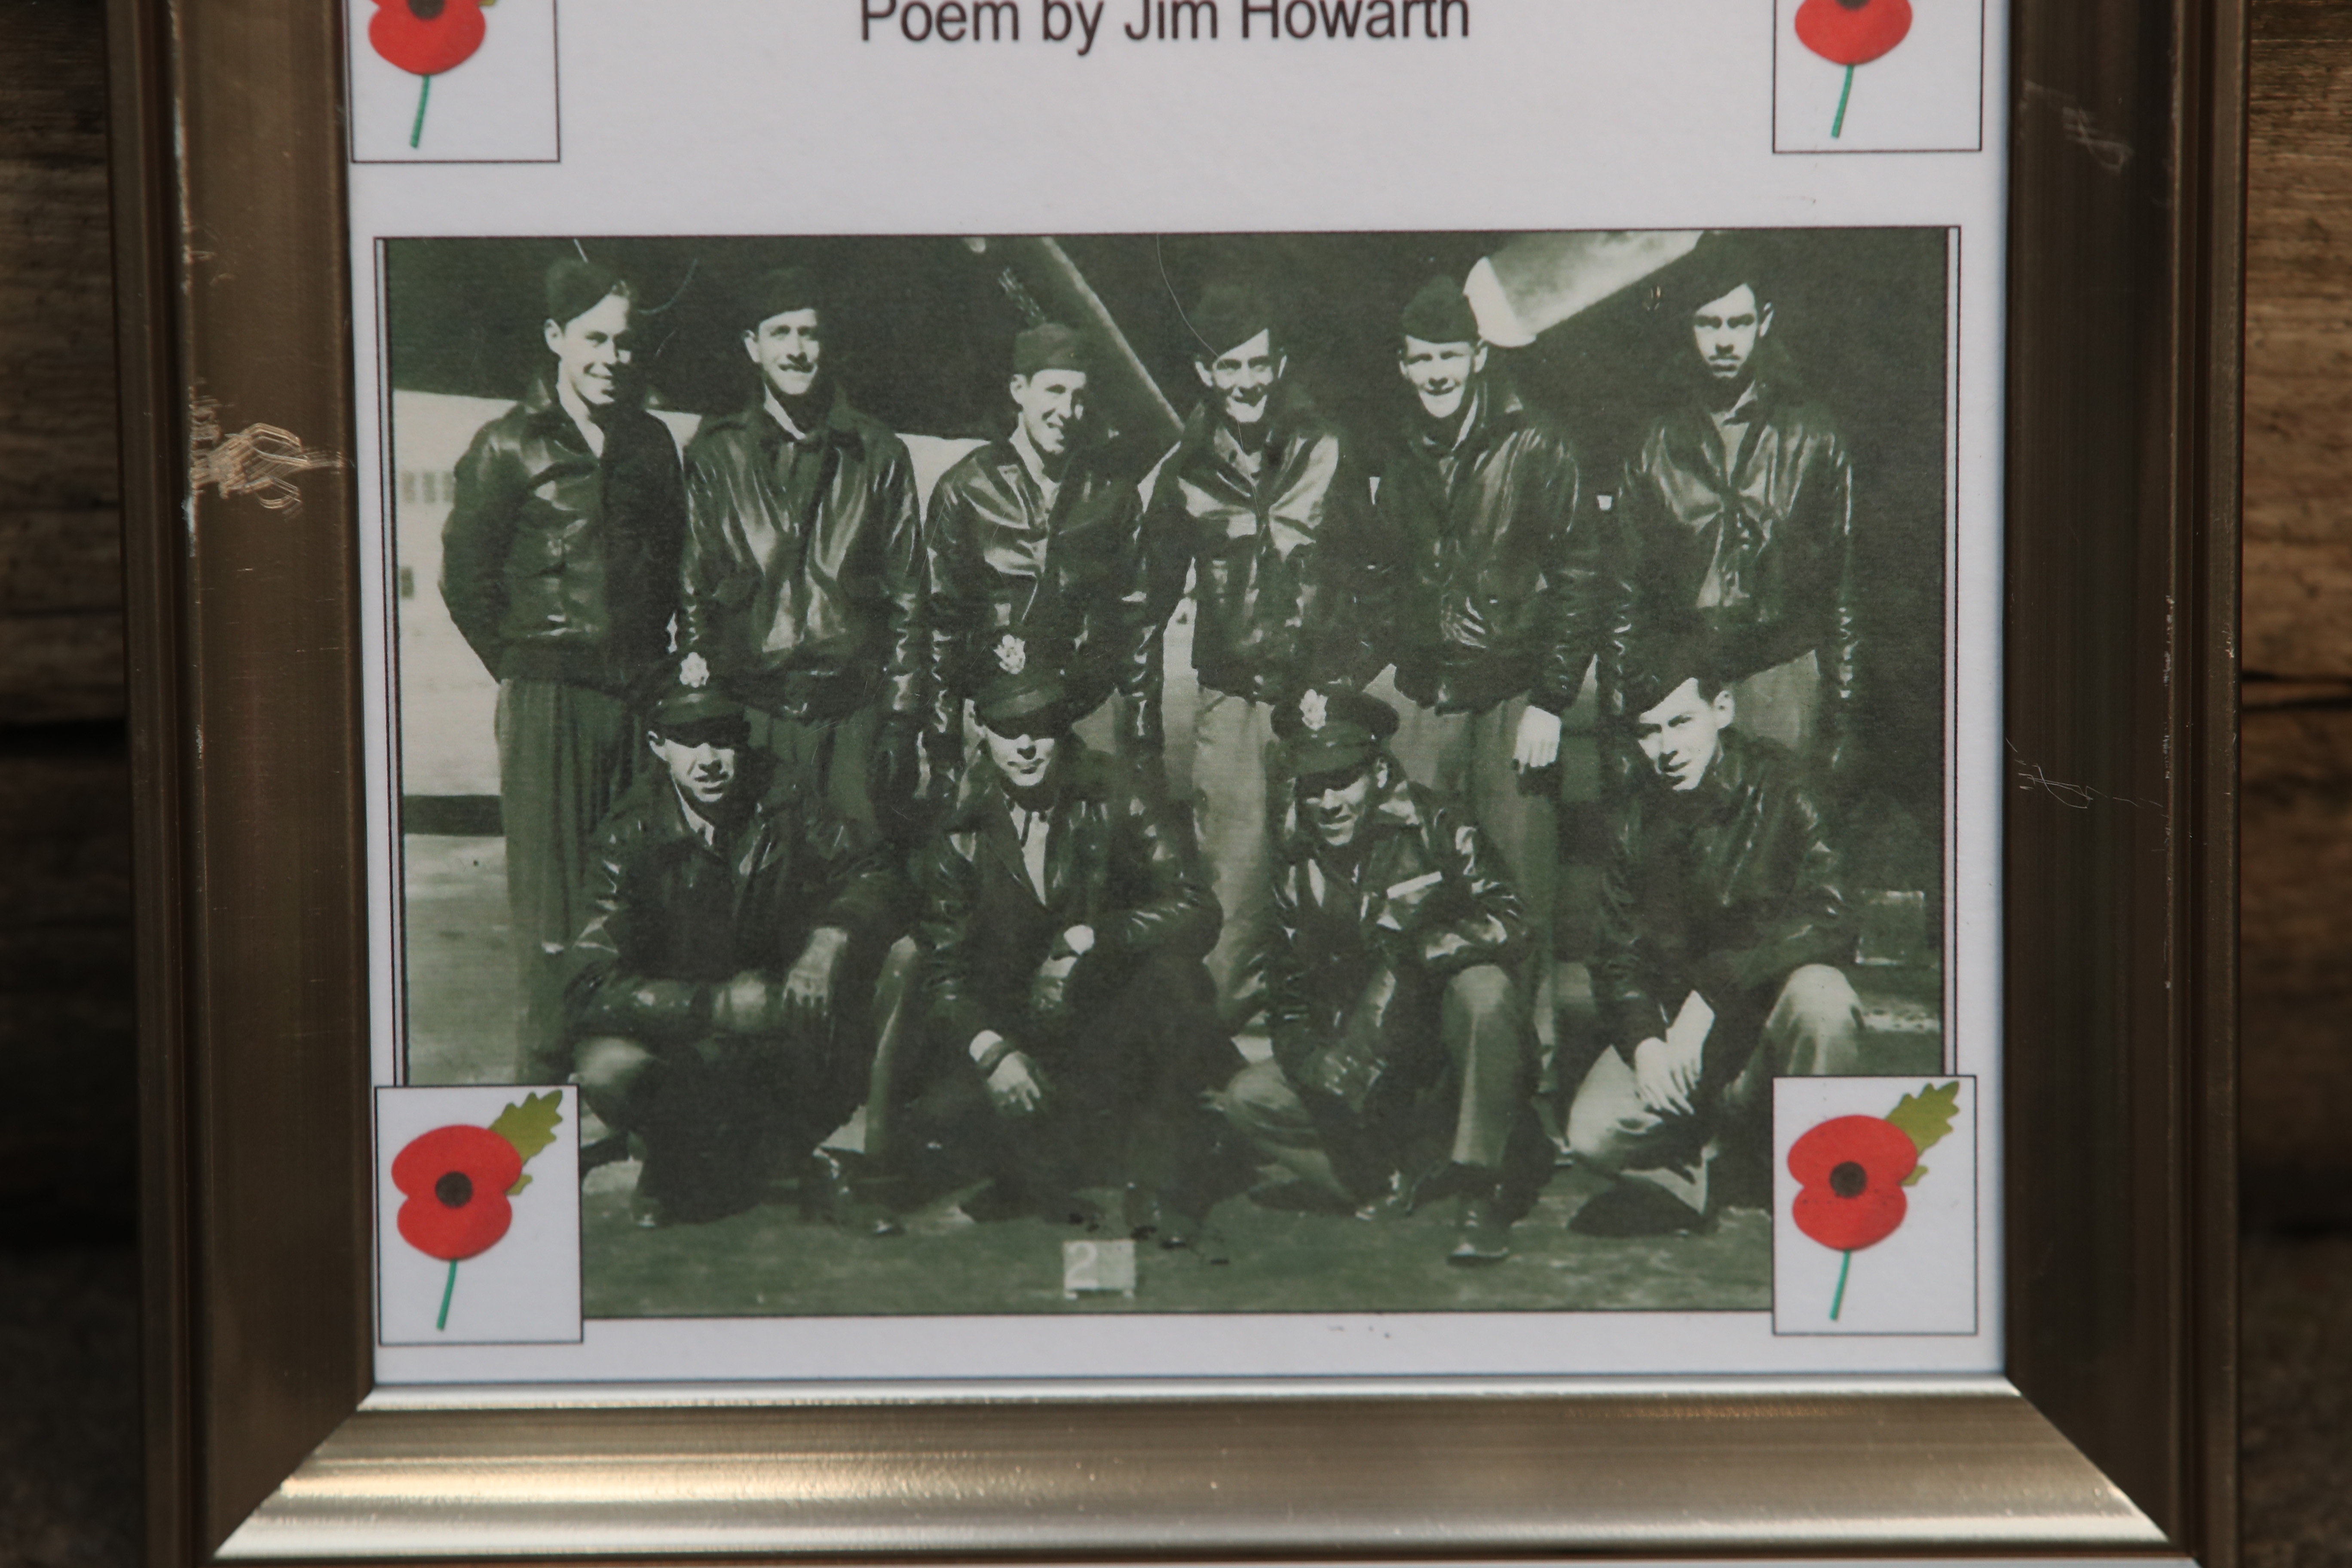 A crew photograph on the memorial in Sheffield to 10 American airmen